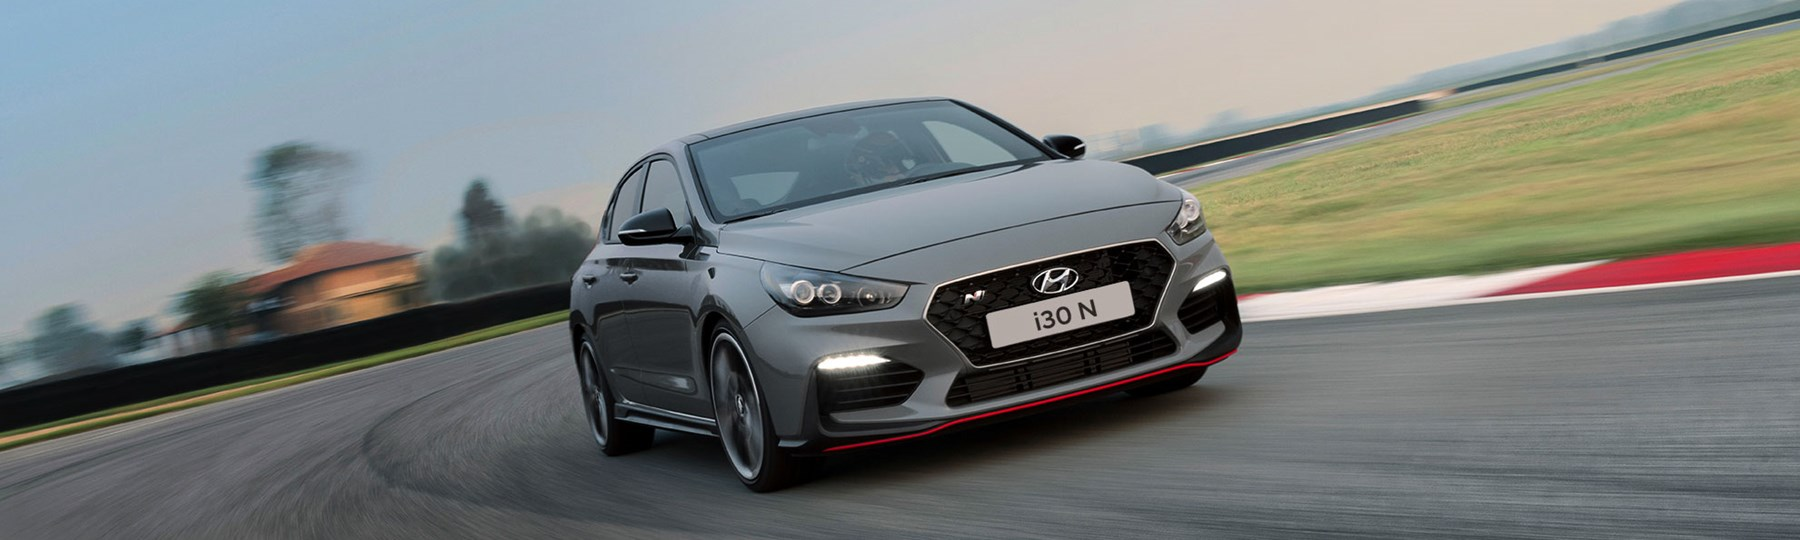 all-new-hyundai-i30-fastback-n-21